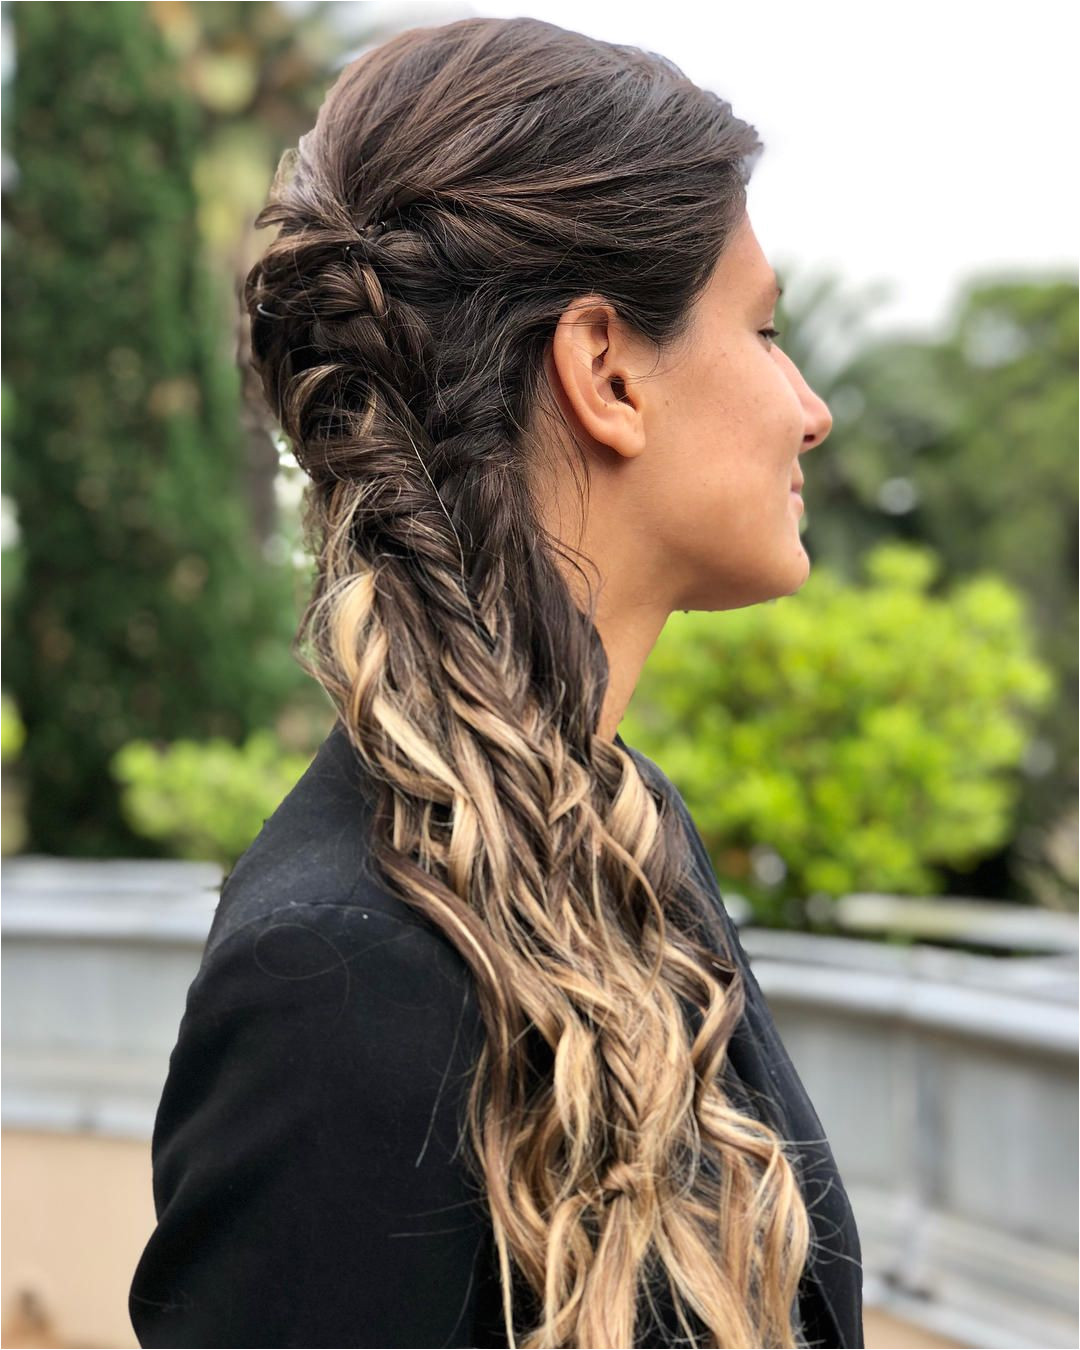 The 85 Best Wedding Hairstyle Ideas with Stunning Braids Curls and Up dos hairstyles wedding